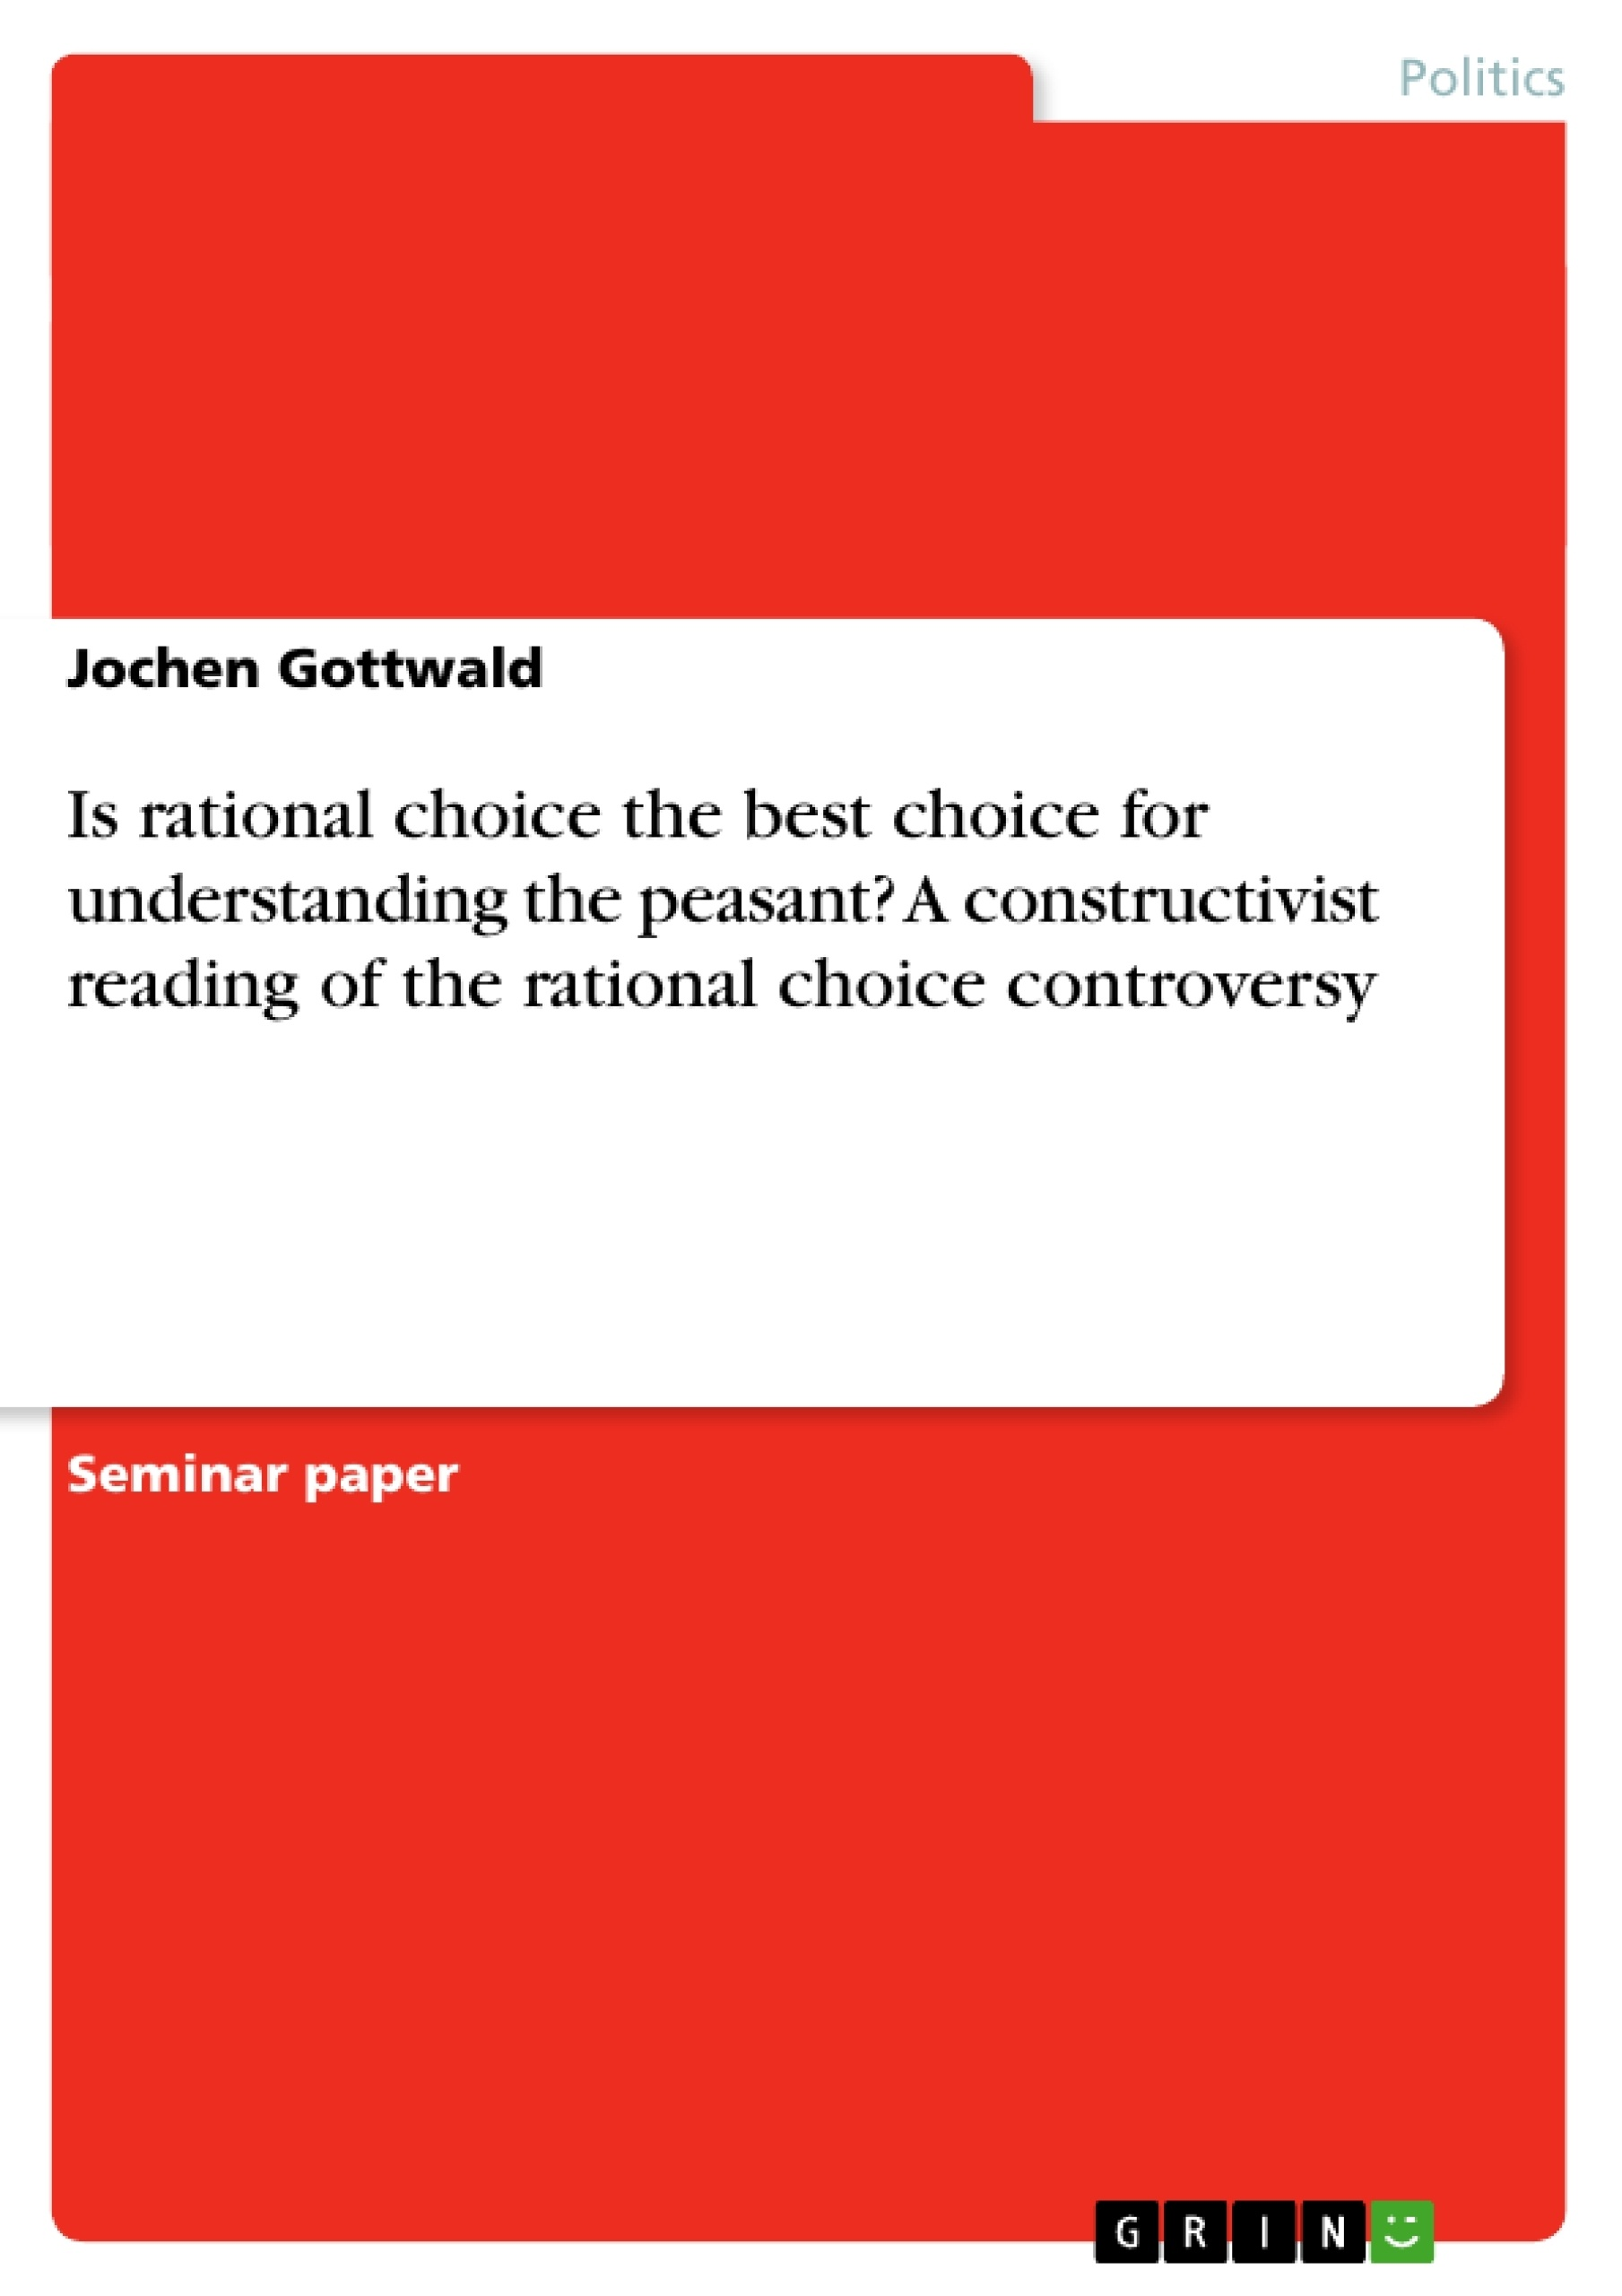 Title: Is rational choice the best choice for understanding the peasant? A constructivist reading of the rational choice controversy